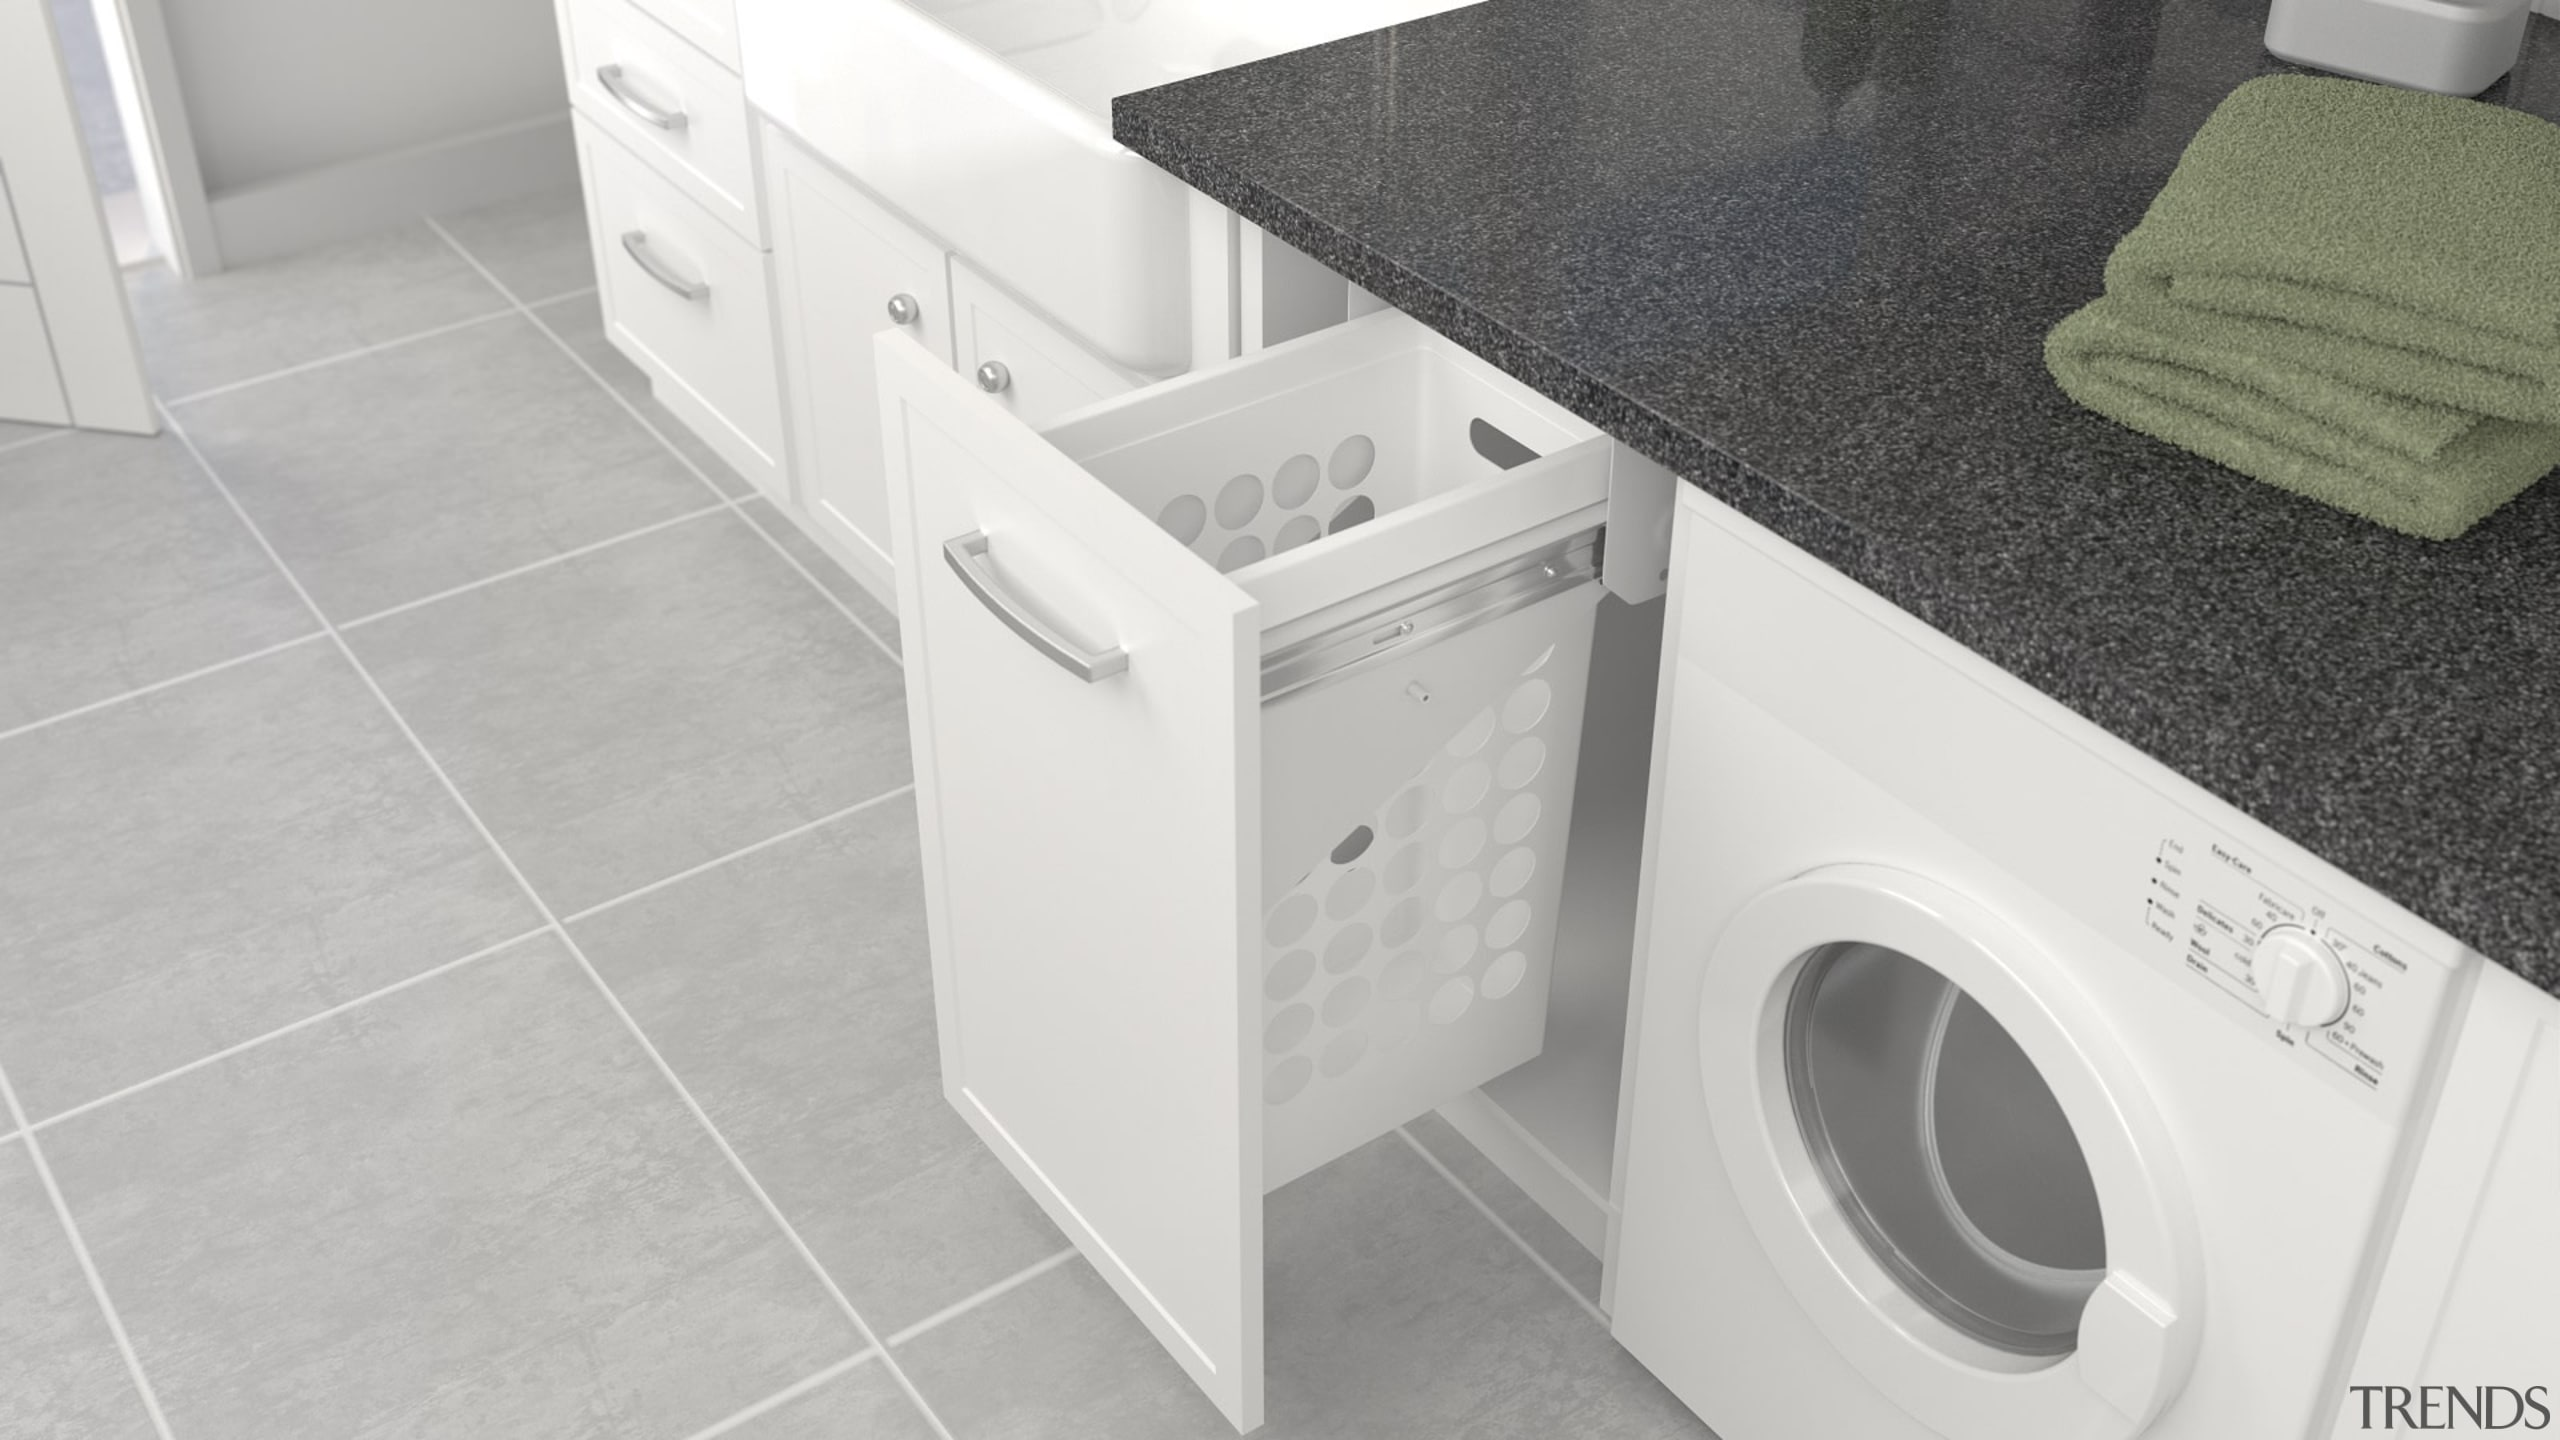 Tanova Simplex laundry pull out with plastic hampers clothes dryer, floor, flooring, home appliance, laundry, laundry room, major appliance, plumbing fixture, product, sink, tile, washing machine, white